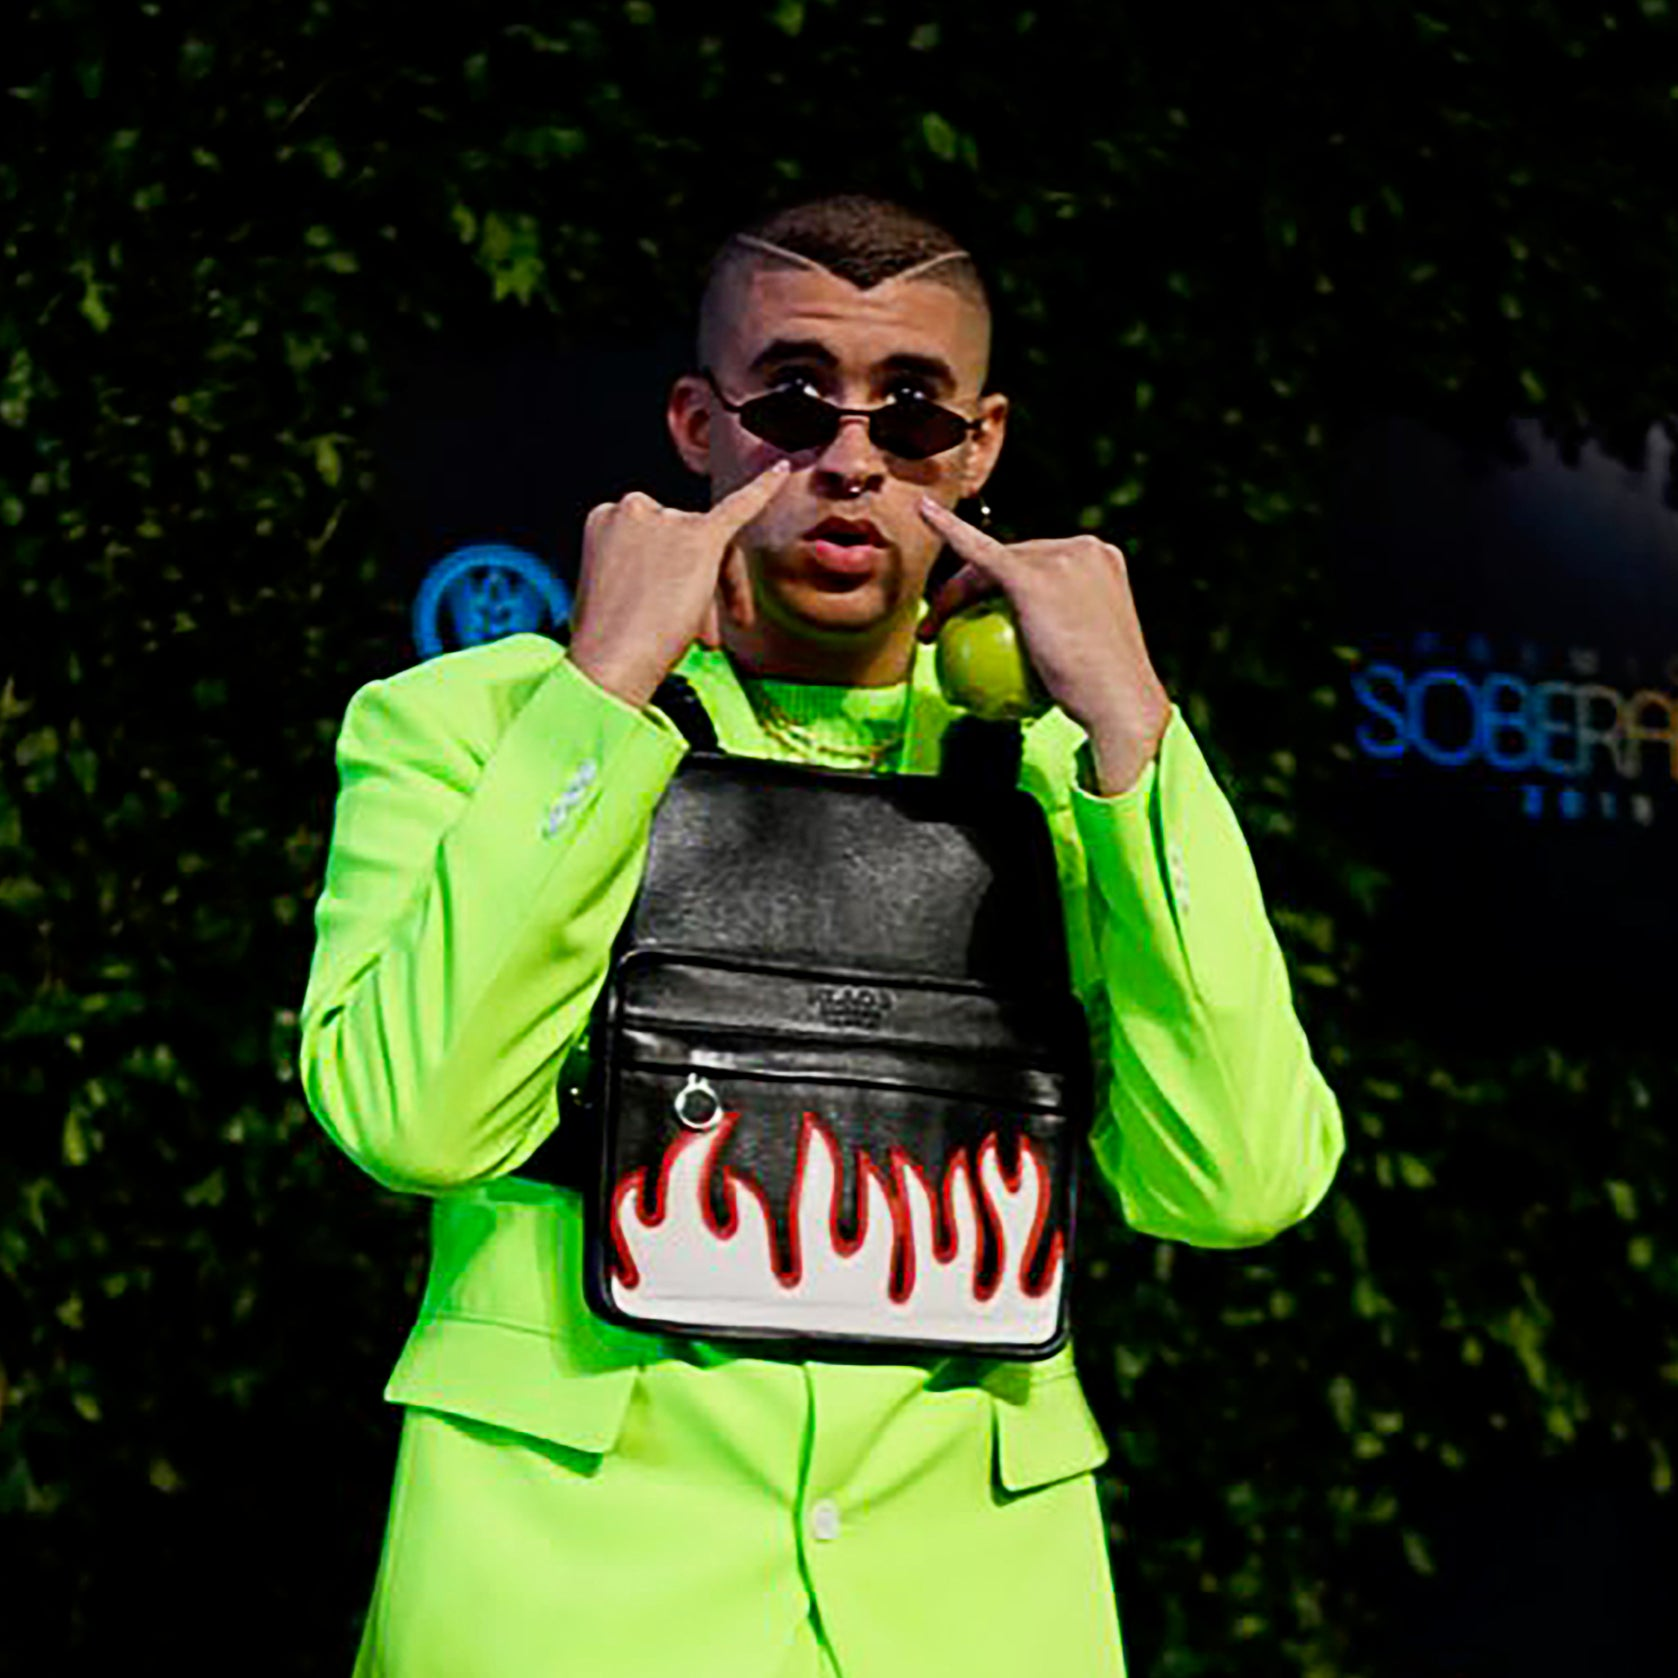 Artist Bad Bunny Rocks the La Flame Chest Rig in the Dominican Republic